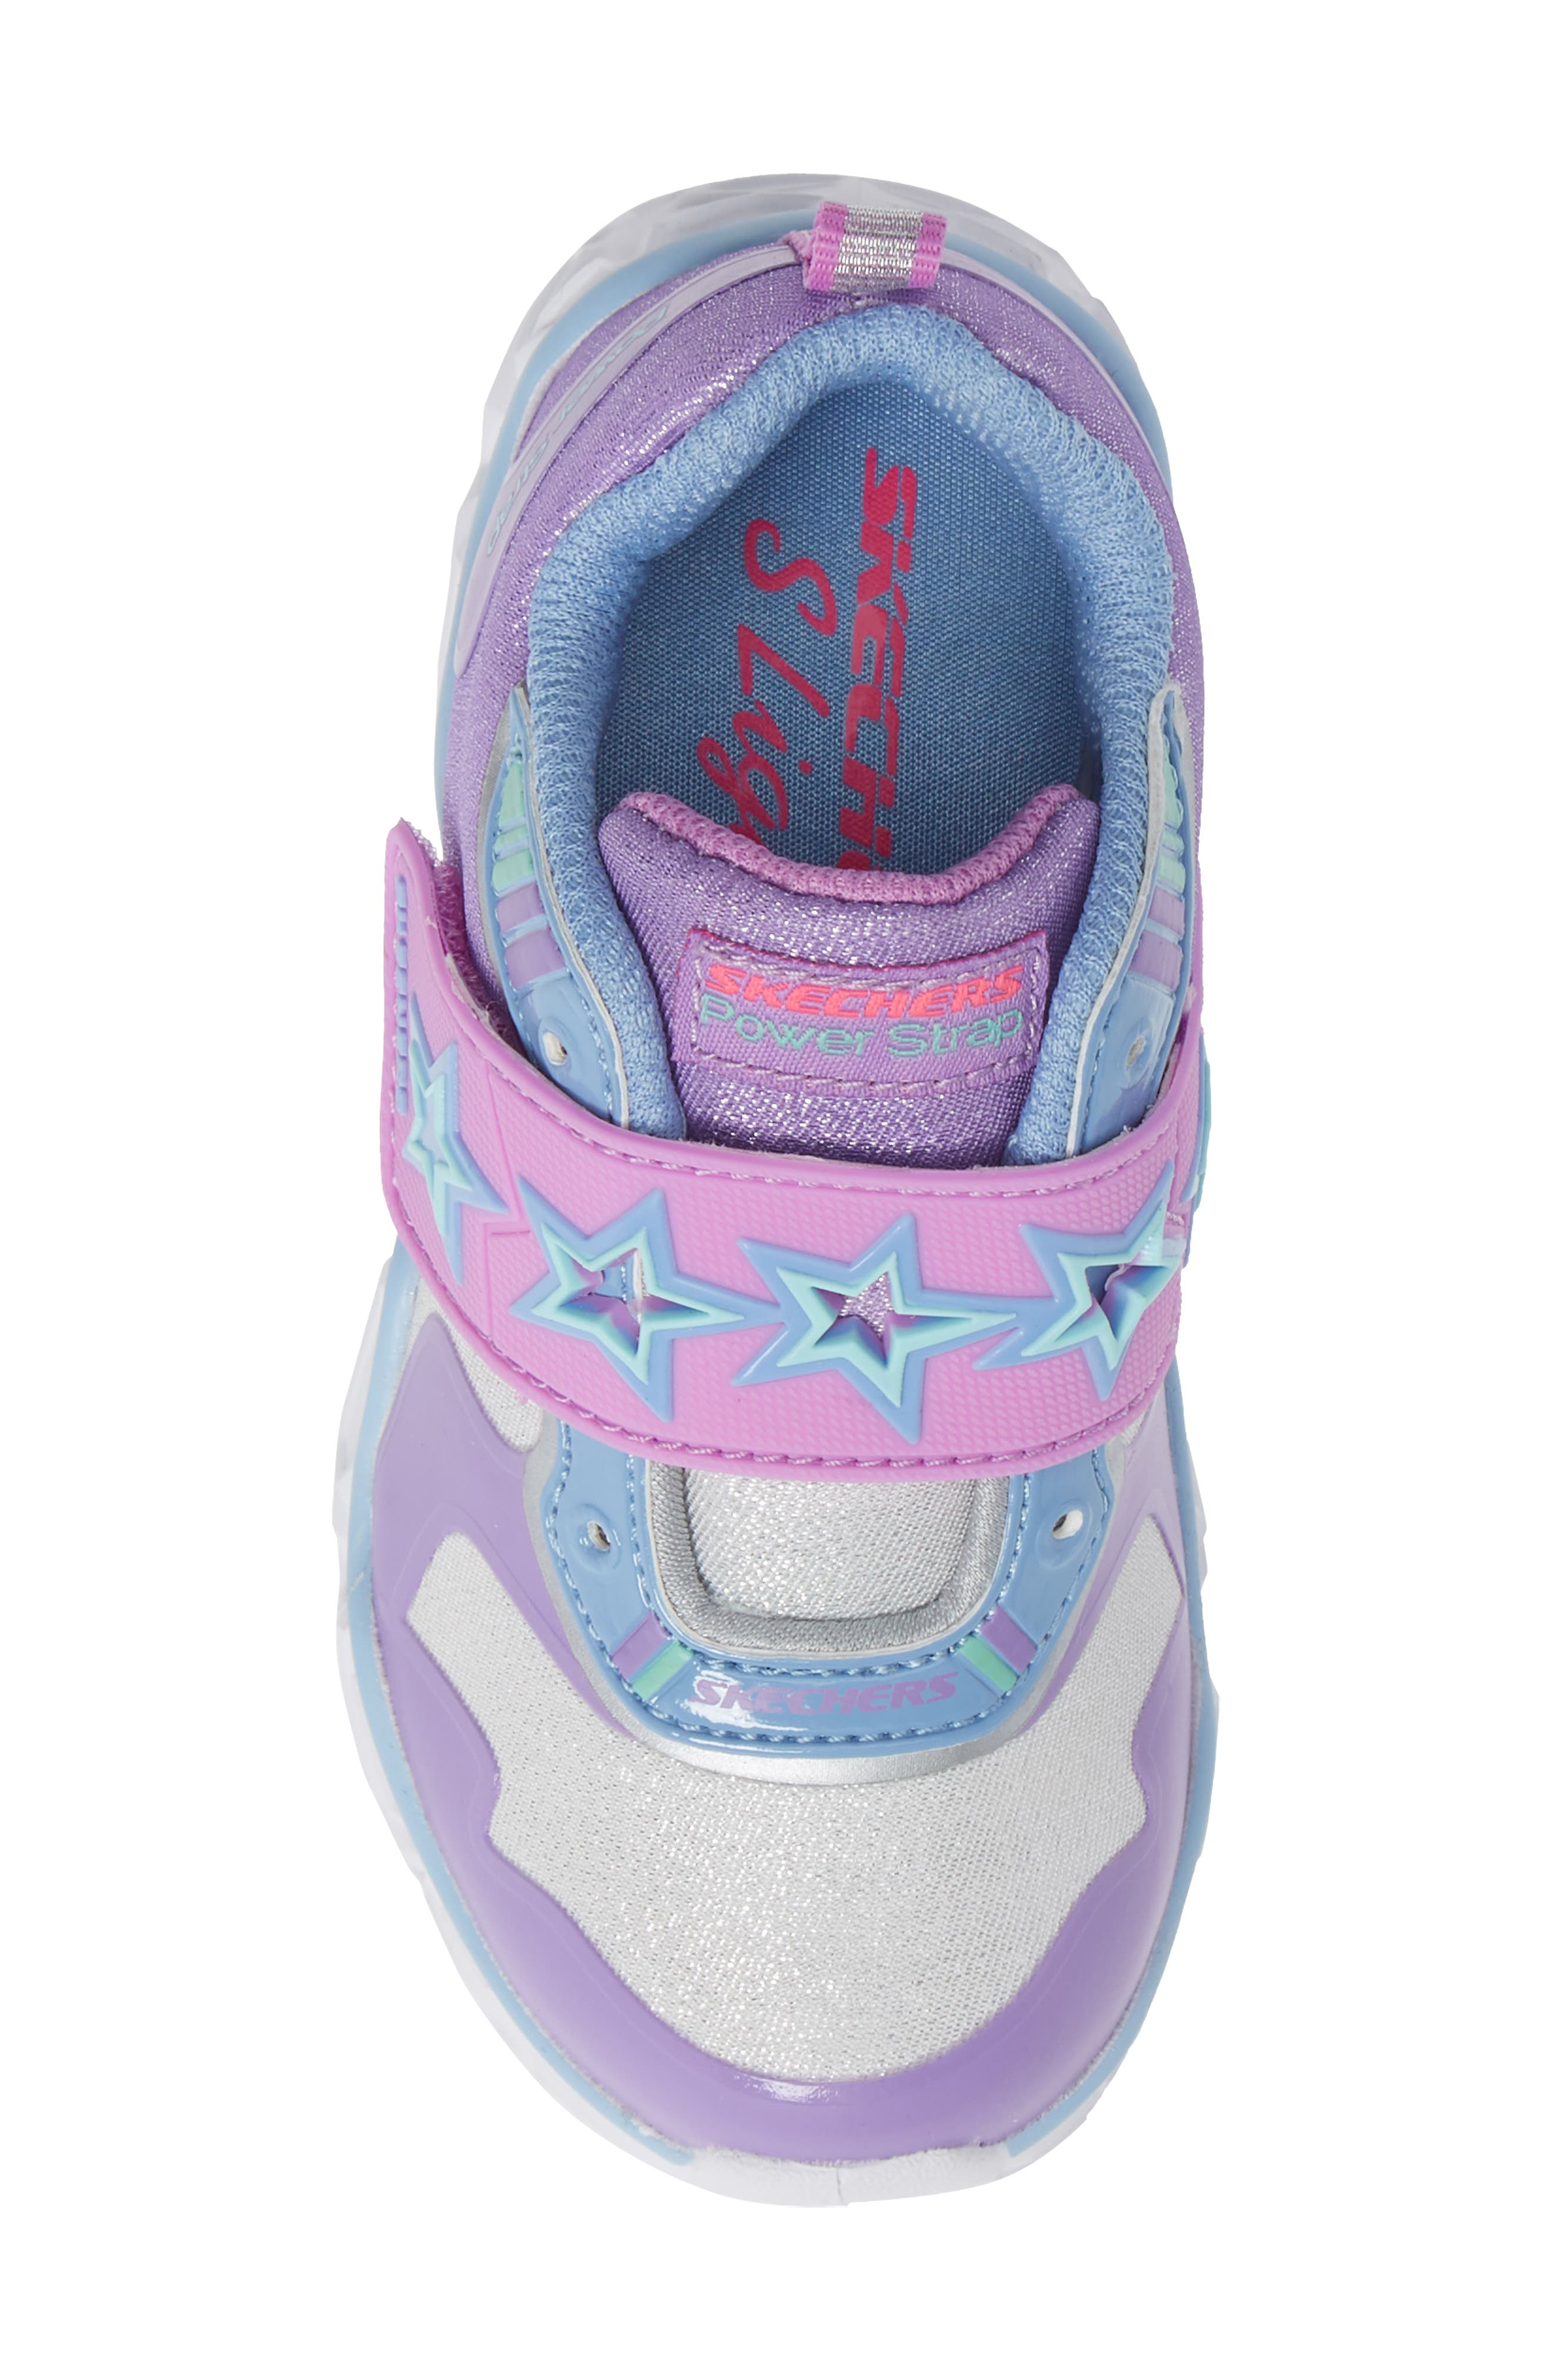 Galaxy Lights Sneakers,                             Alternate thumbnail 5, color,                             500